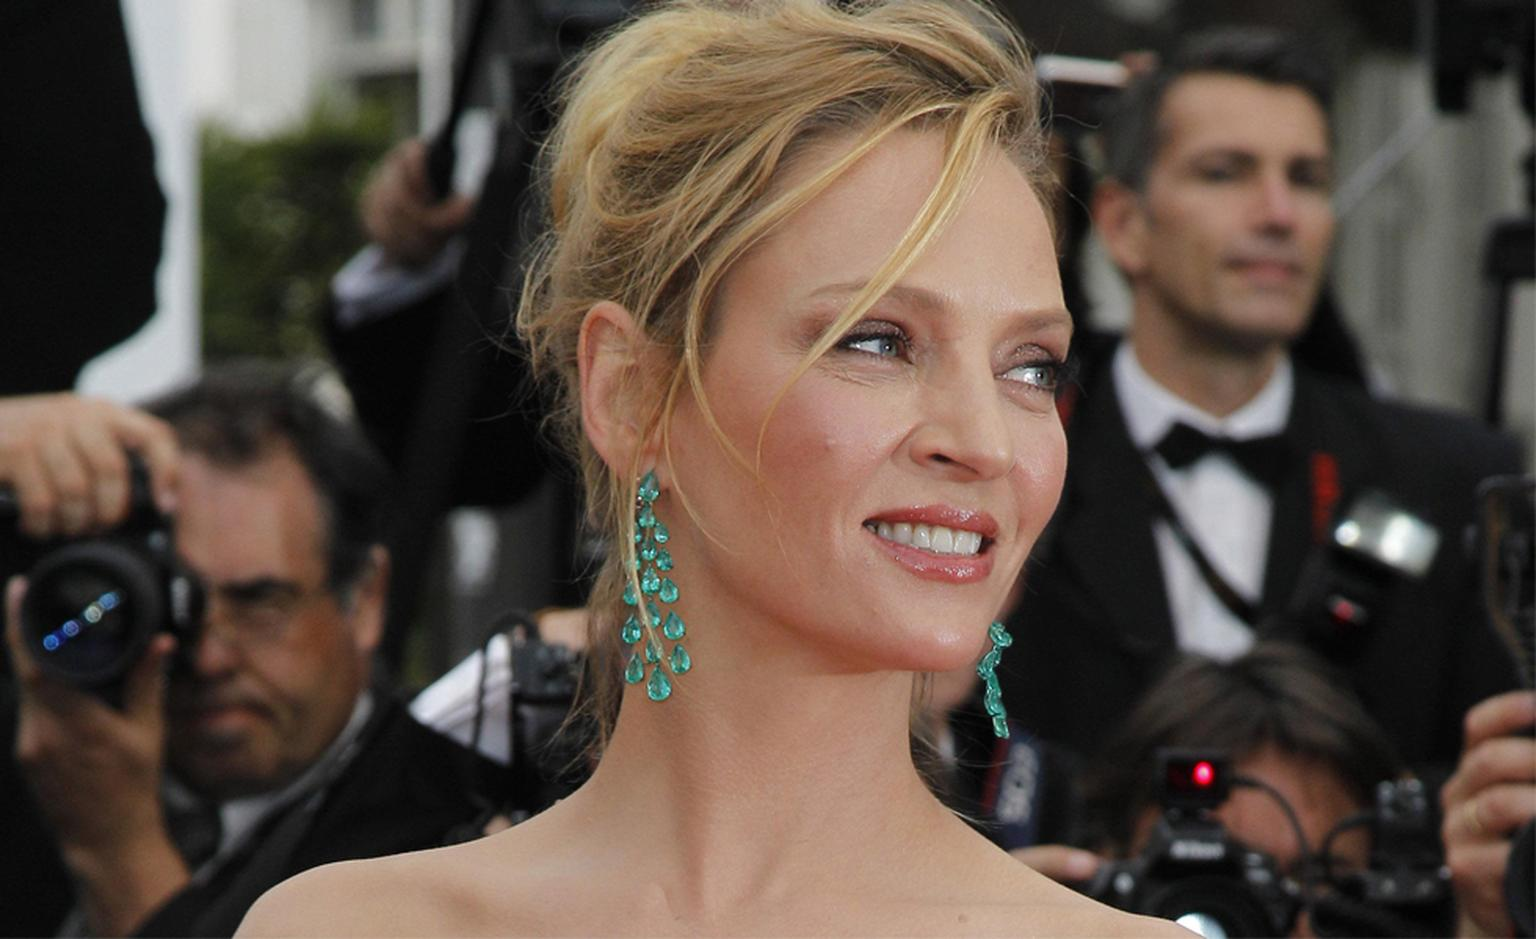 Uma Thurman in Chopard emerald chandelier earrings and bracelet.